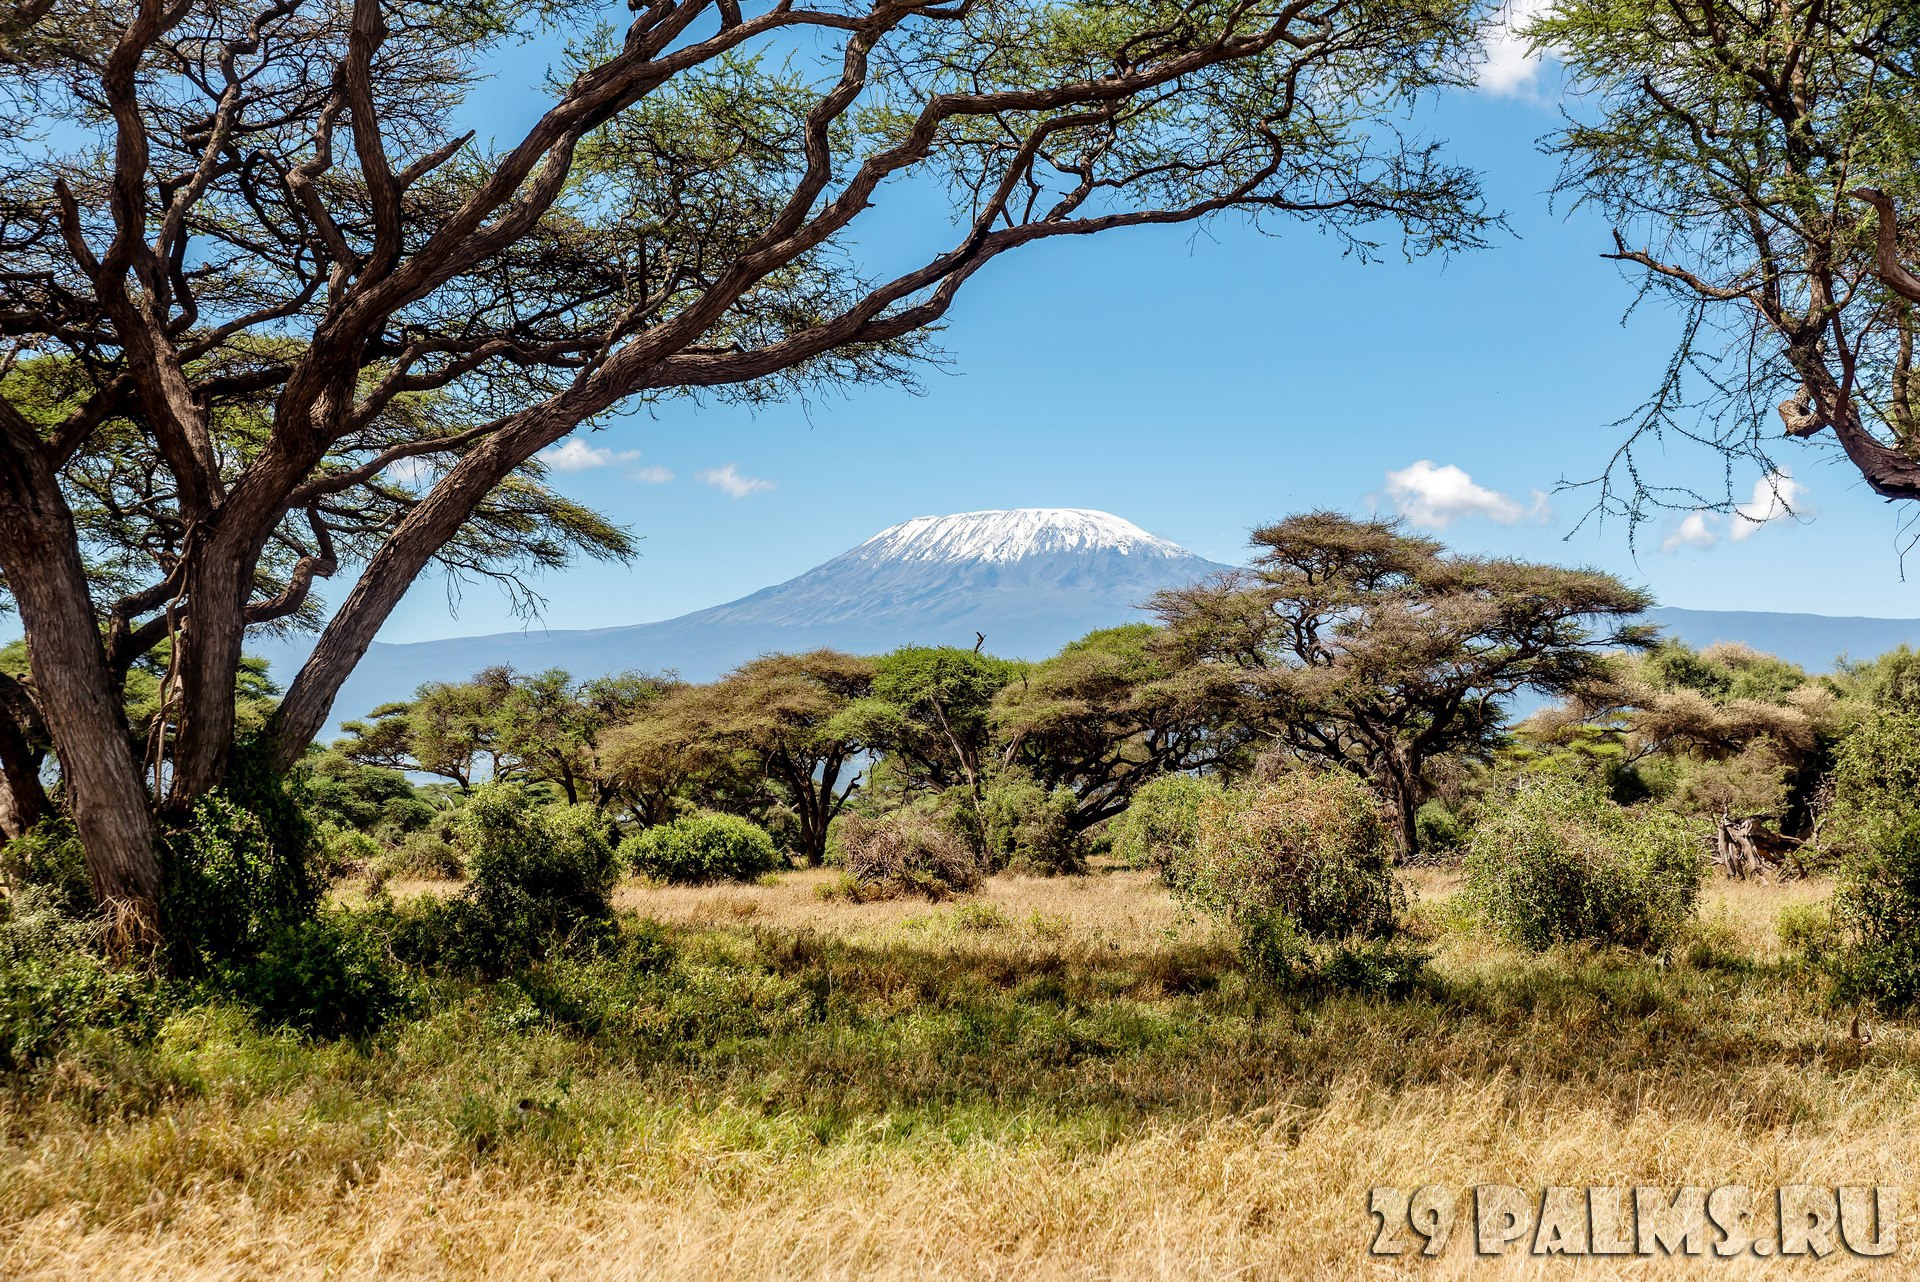 Клуб путешествий Павла Аксенова. Танзания. Гора Килиманджаро. Snow on the top of the Mount Kilimanjaro in Amboseli. Фото dvrcan - Depositphotos